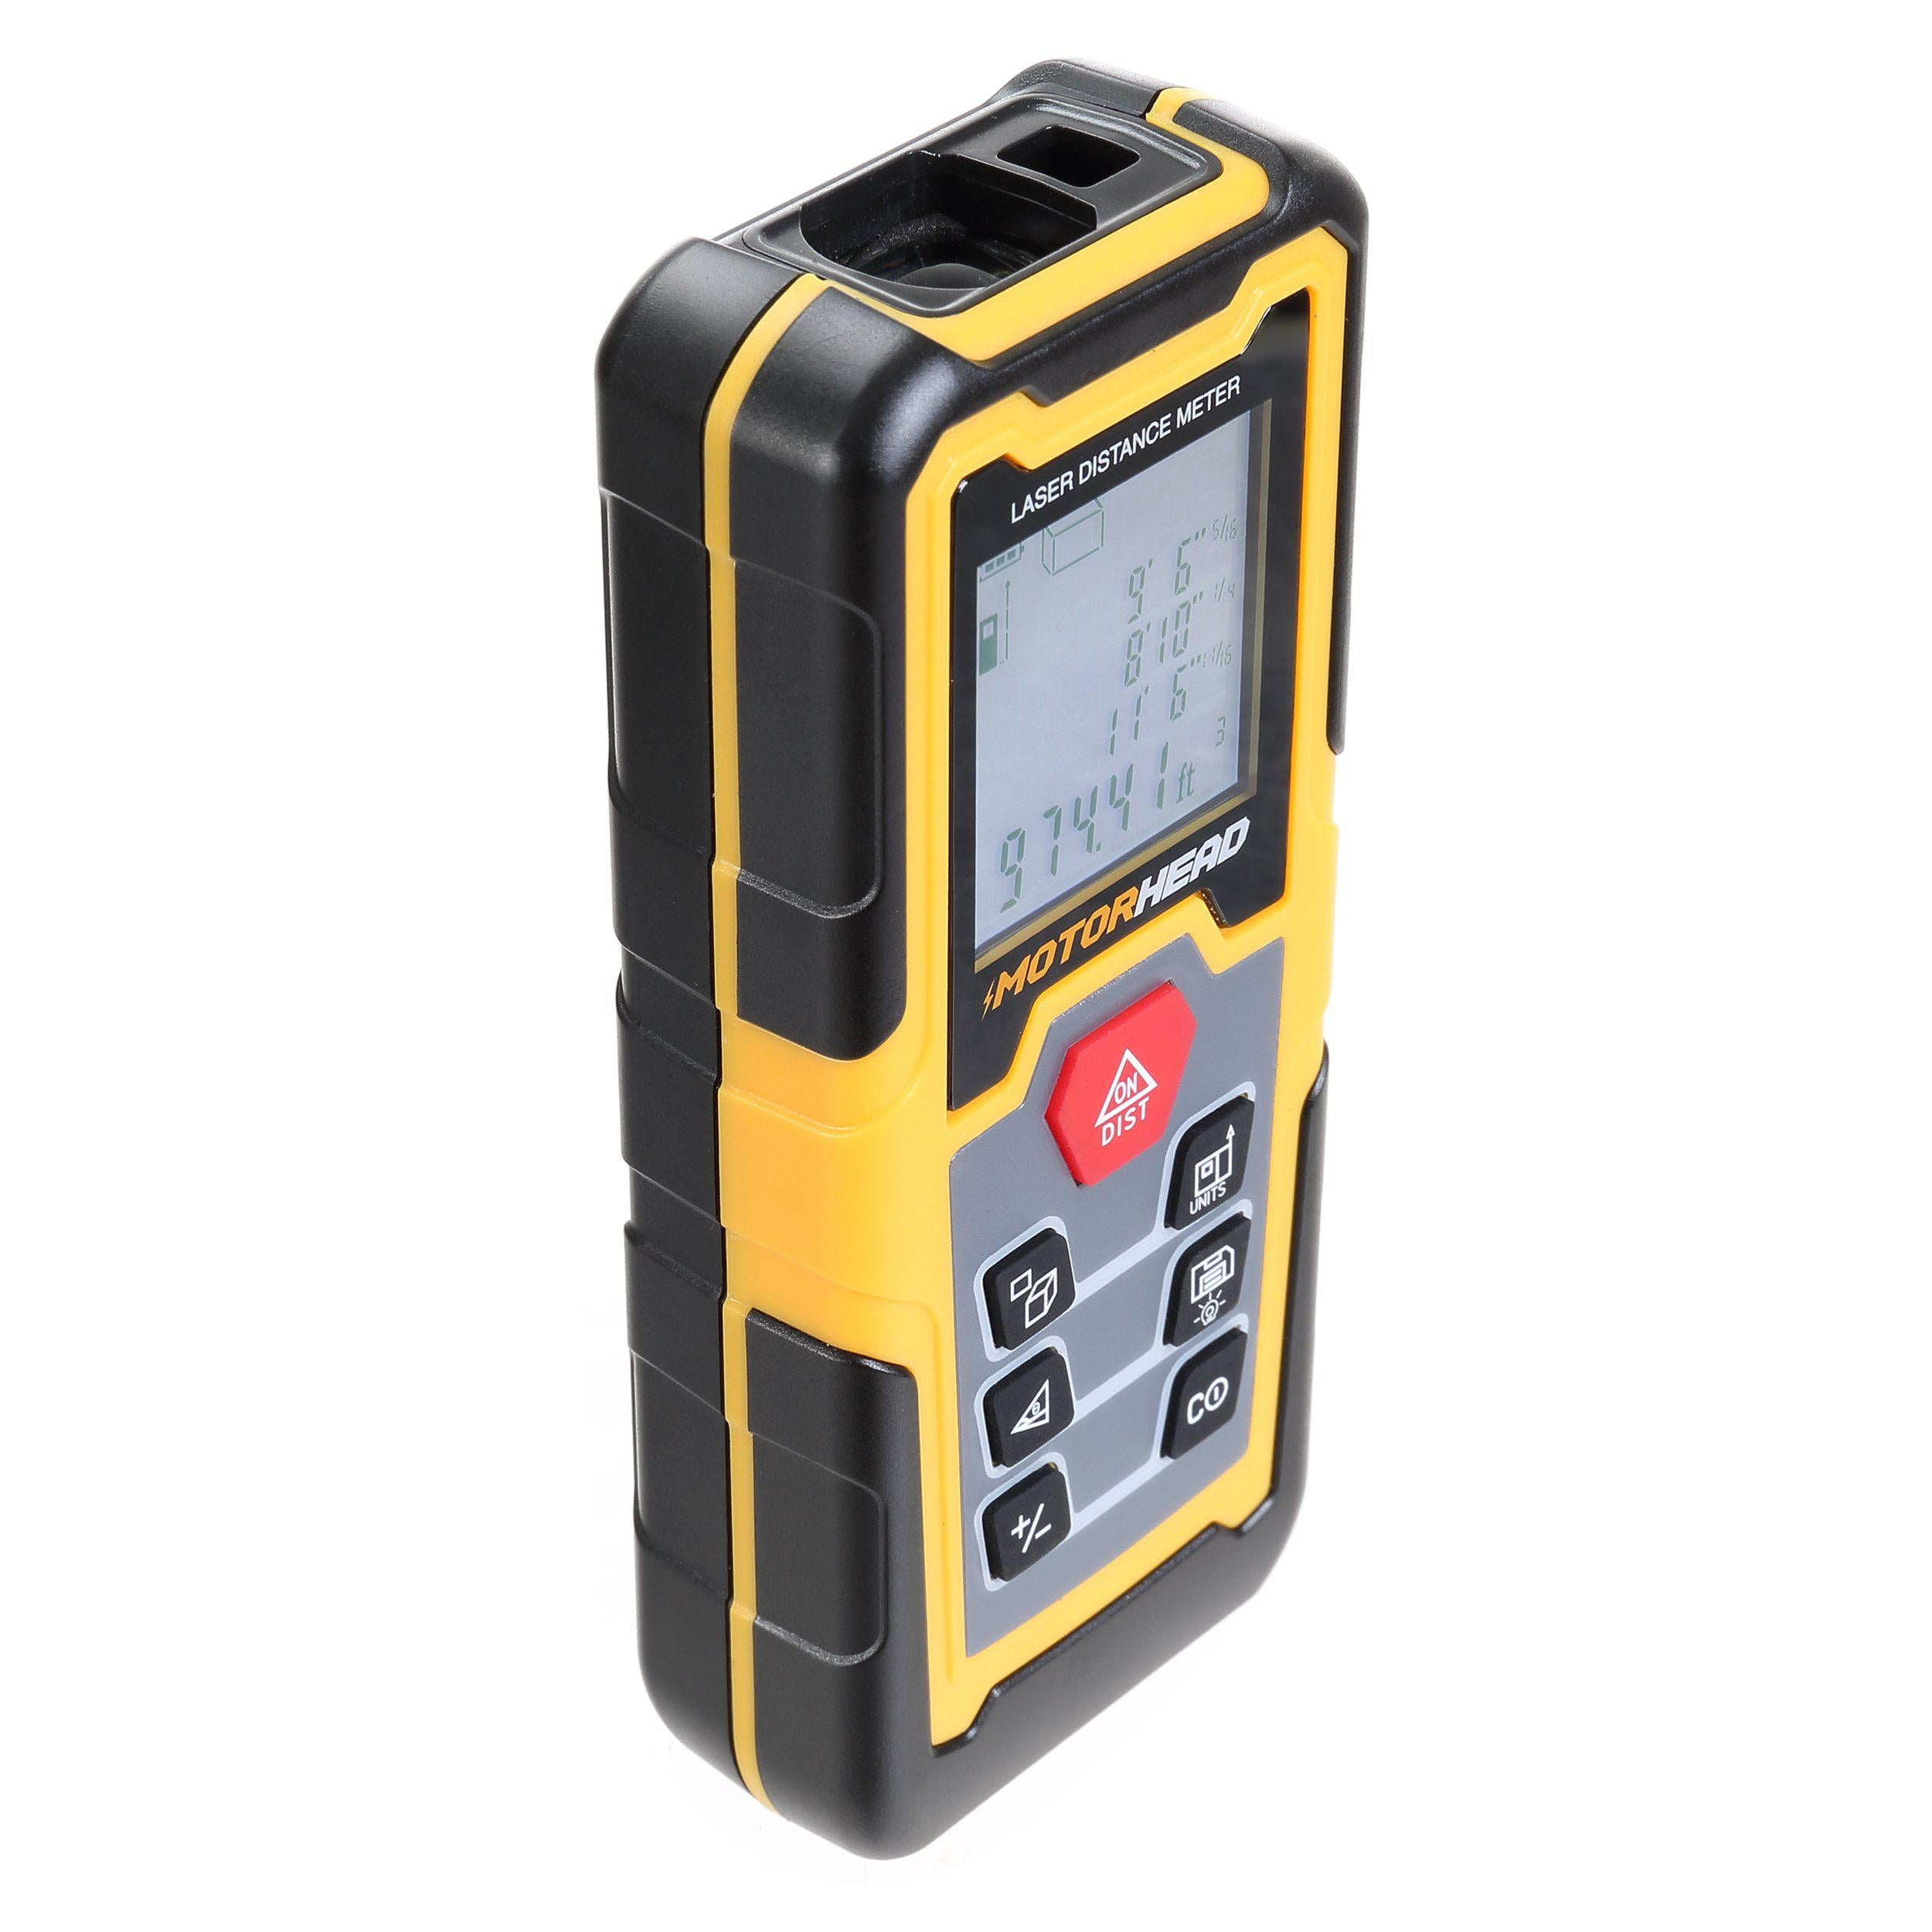 196 ft. Laser Distance Measure with Bubble Levels